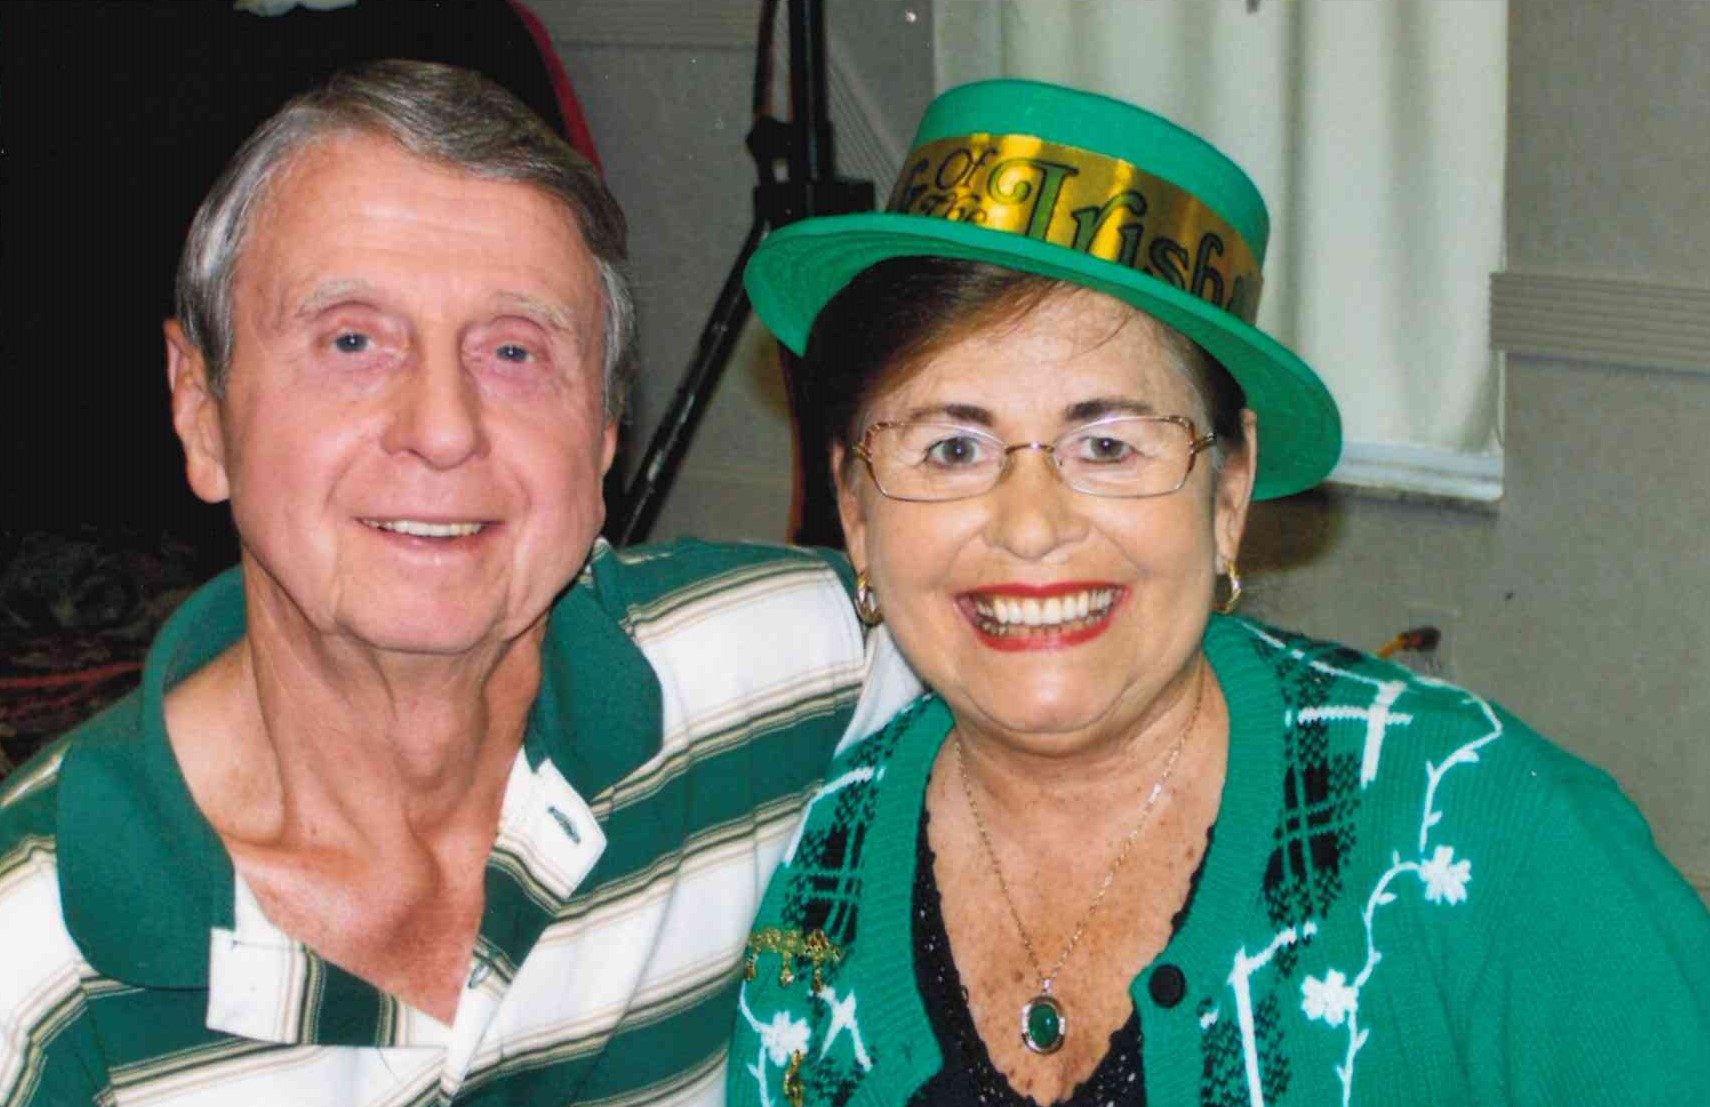 Happy St. Patrick's Day from George and Elaine!